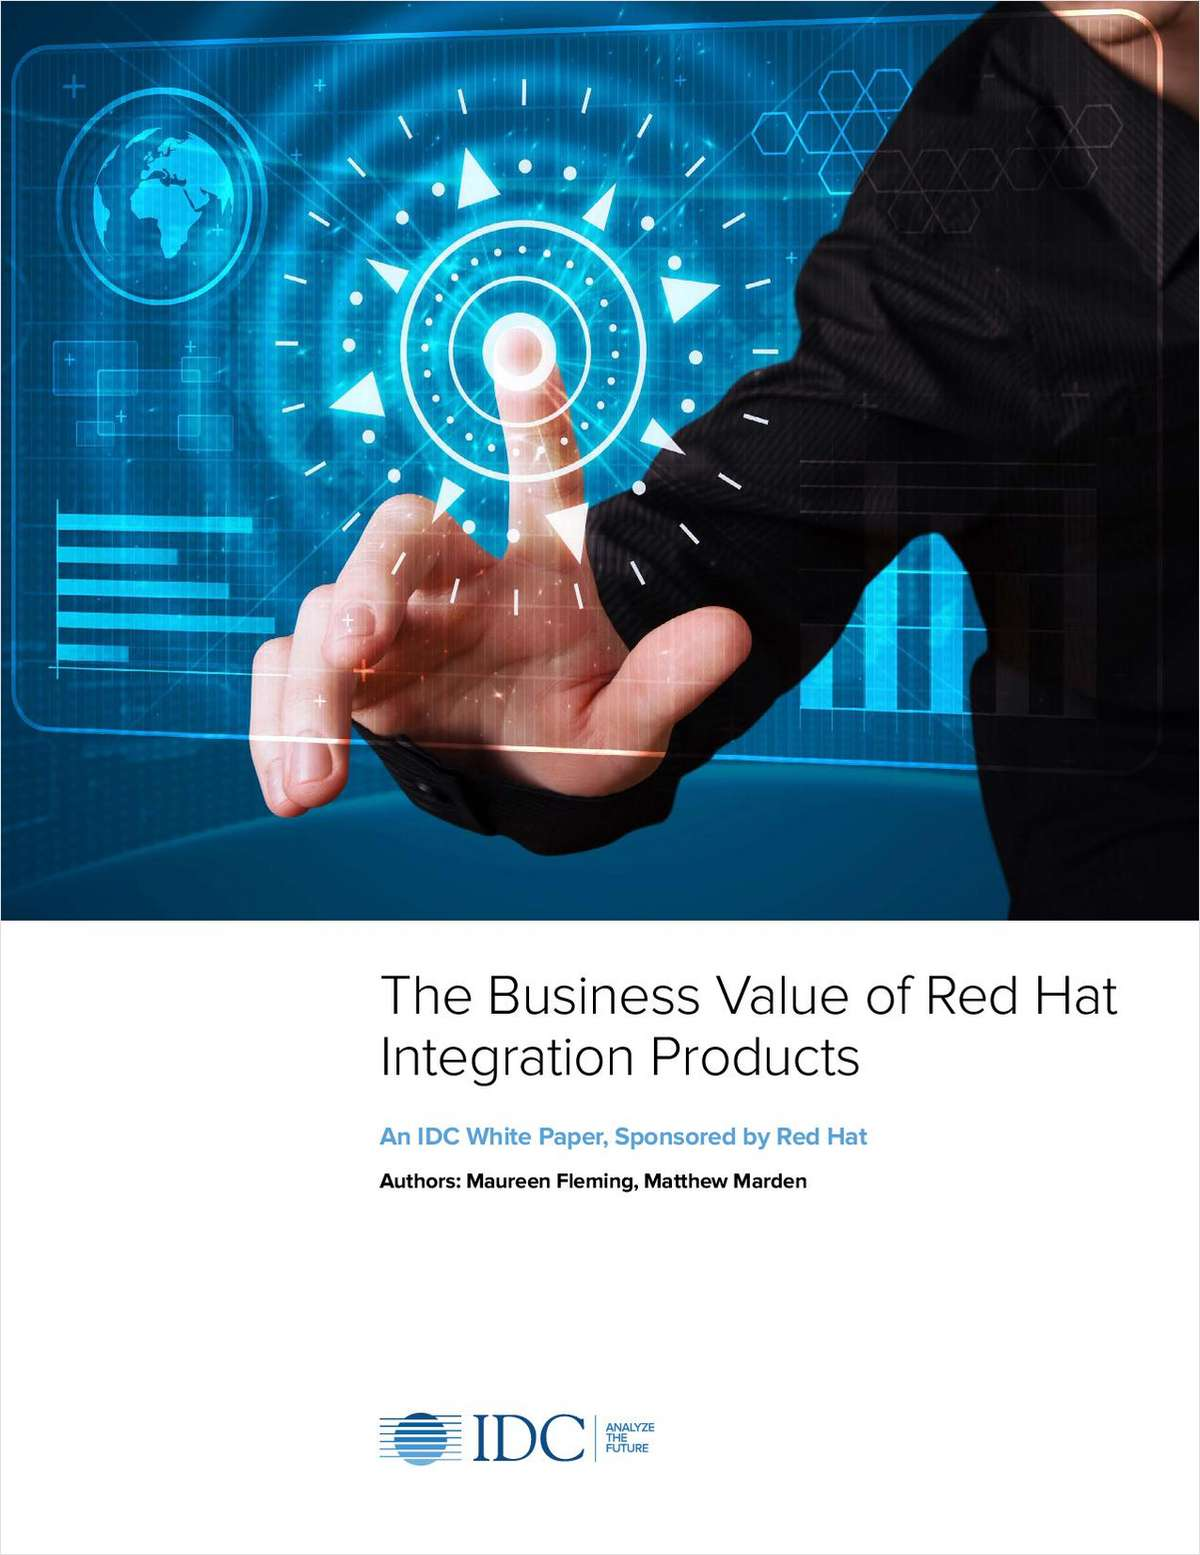 The Business Value of Red Hat Integration Products